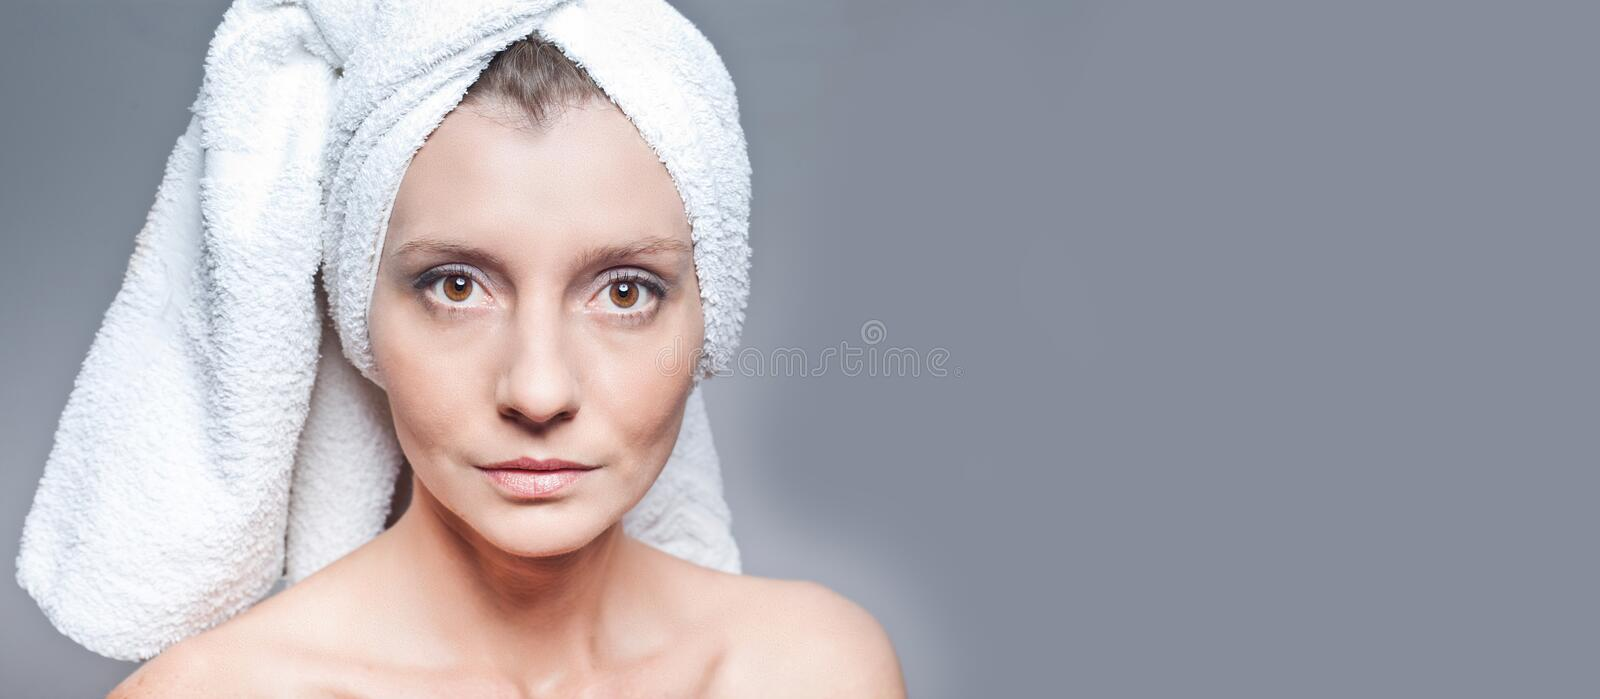 Happy woman after beauty treatment - before/after shots - skin care, anti-aging procedures, rejuvenation, lifting, tightening of. Facial skin stock photo